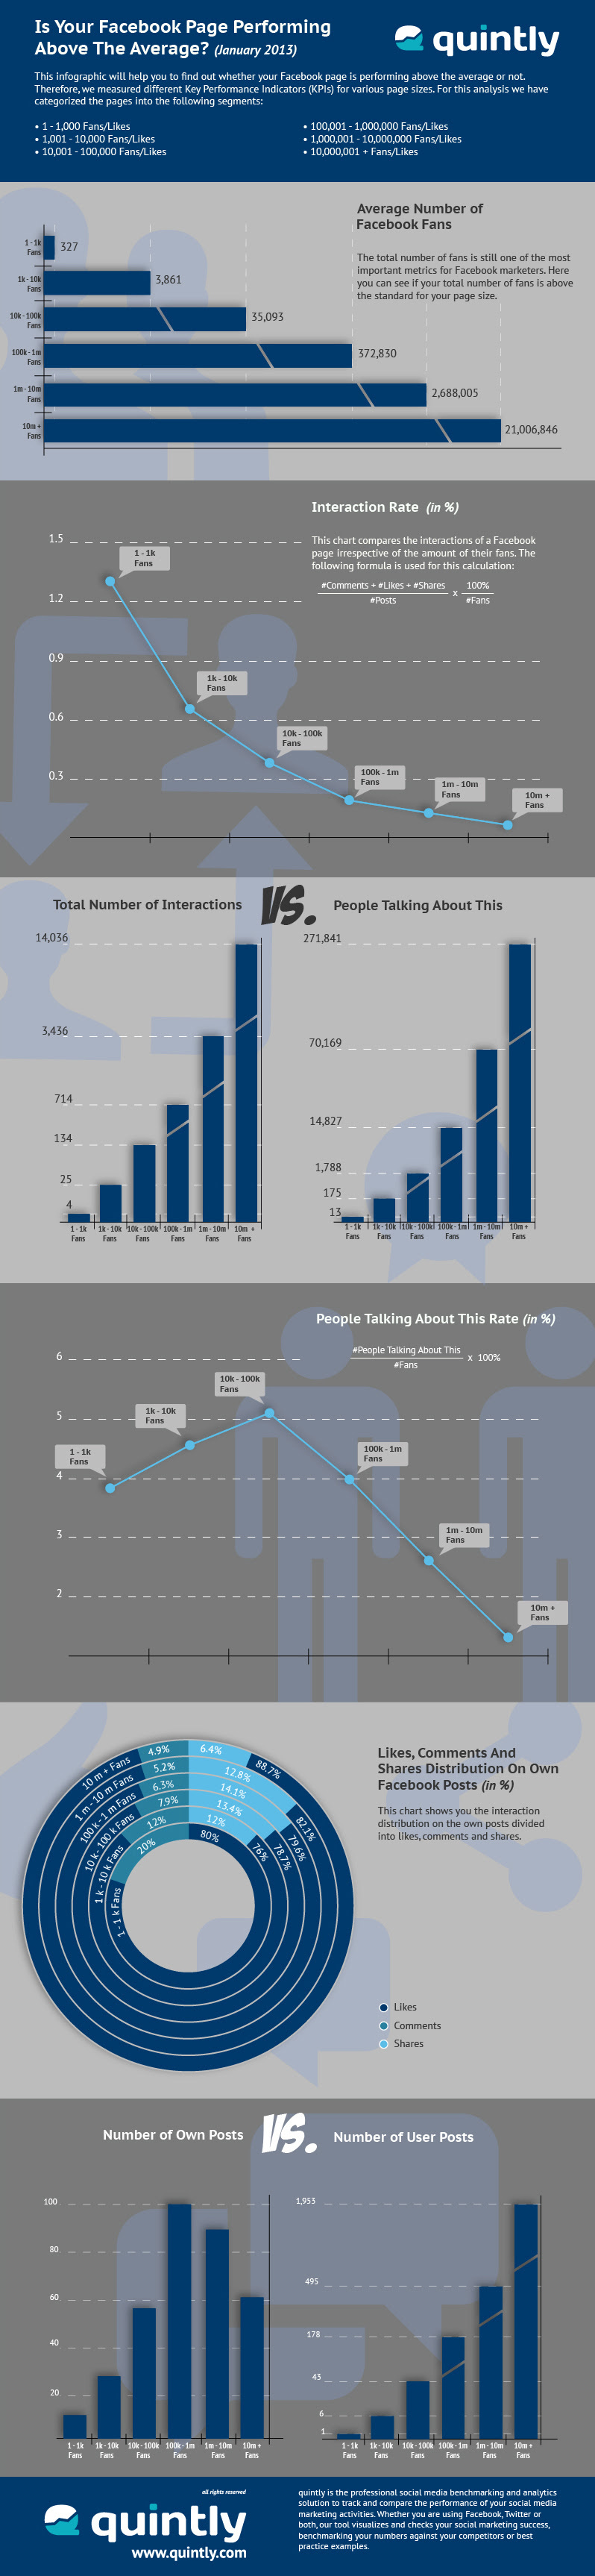 quintly Infographic: Is Your Facebook Page Performing Above The Average For January 2013